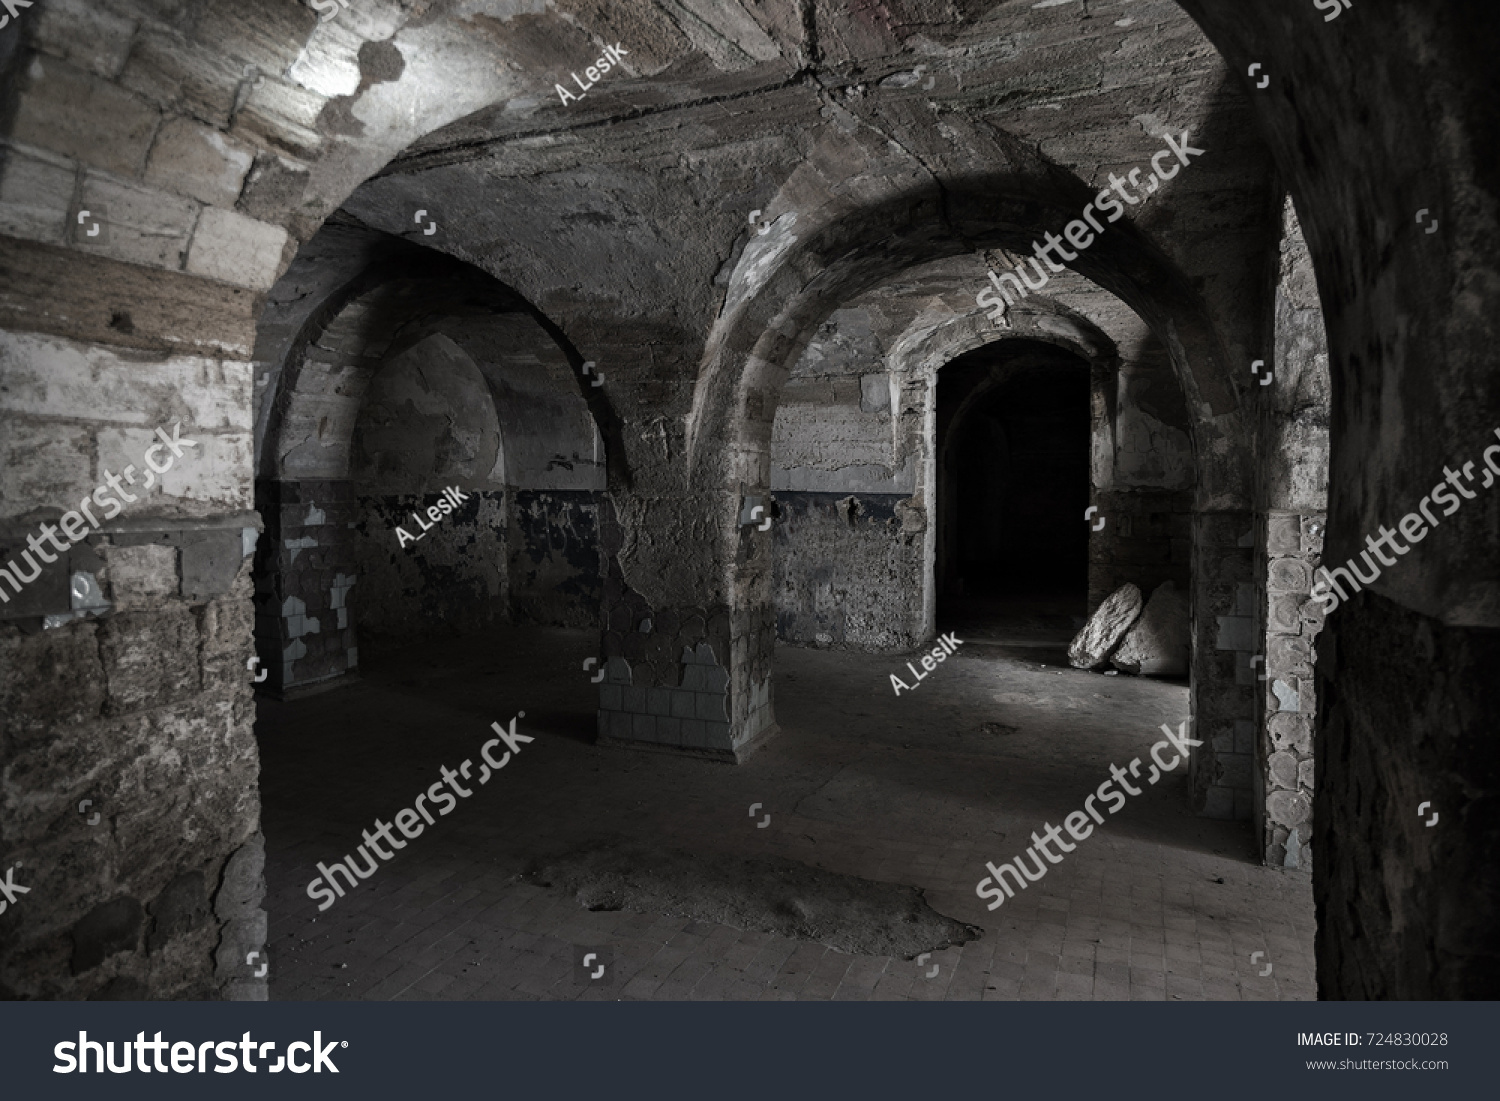 Old Abandoned Tunnel Underground Wine Cellar Stock Photo (Royalty Free) 724830028 - Shutterstock & Old Abandoned Tunnel Underground Wine Cellar Stock Photo (Royalty ...